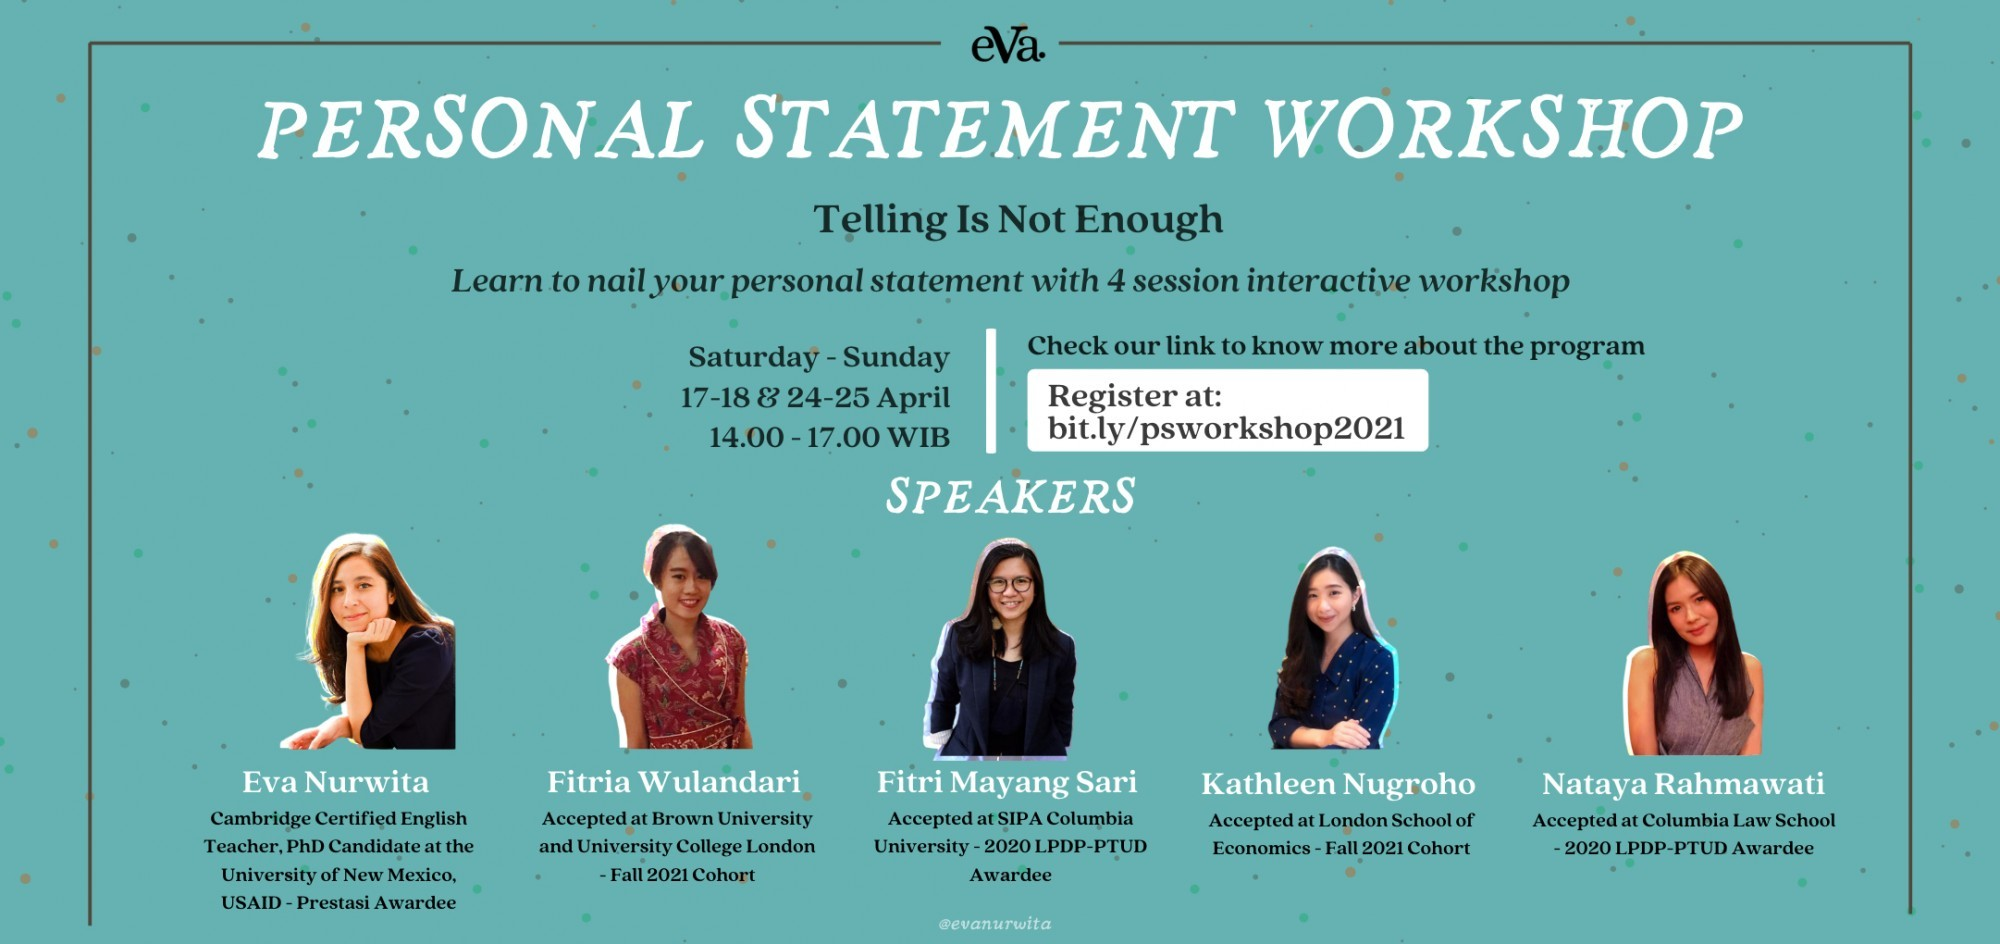 Personal Statement Workshop - Telling is Not Enough